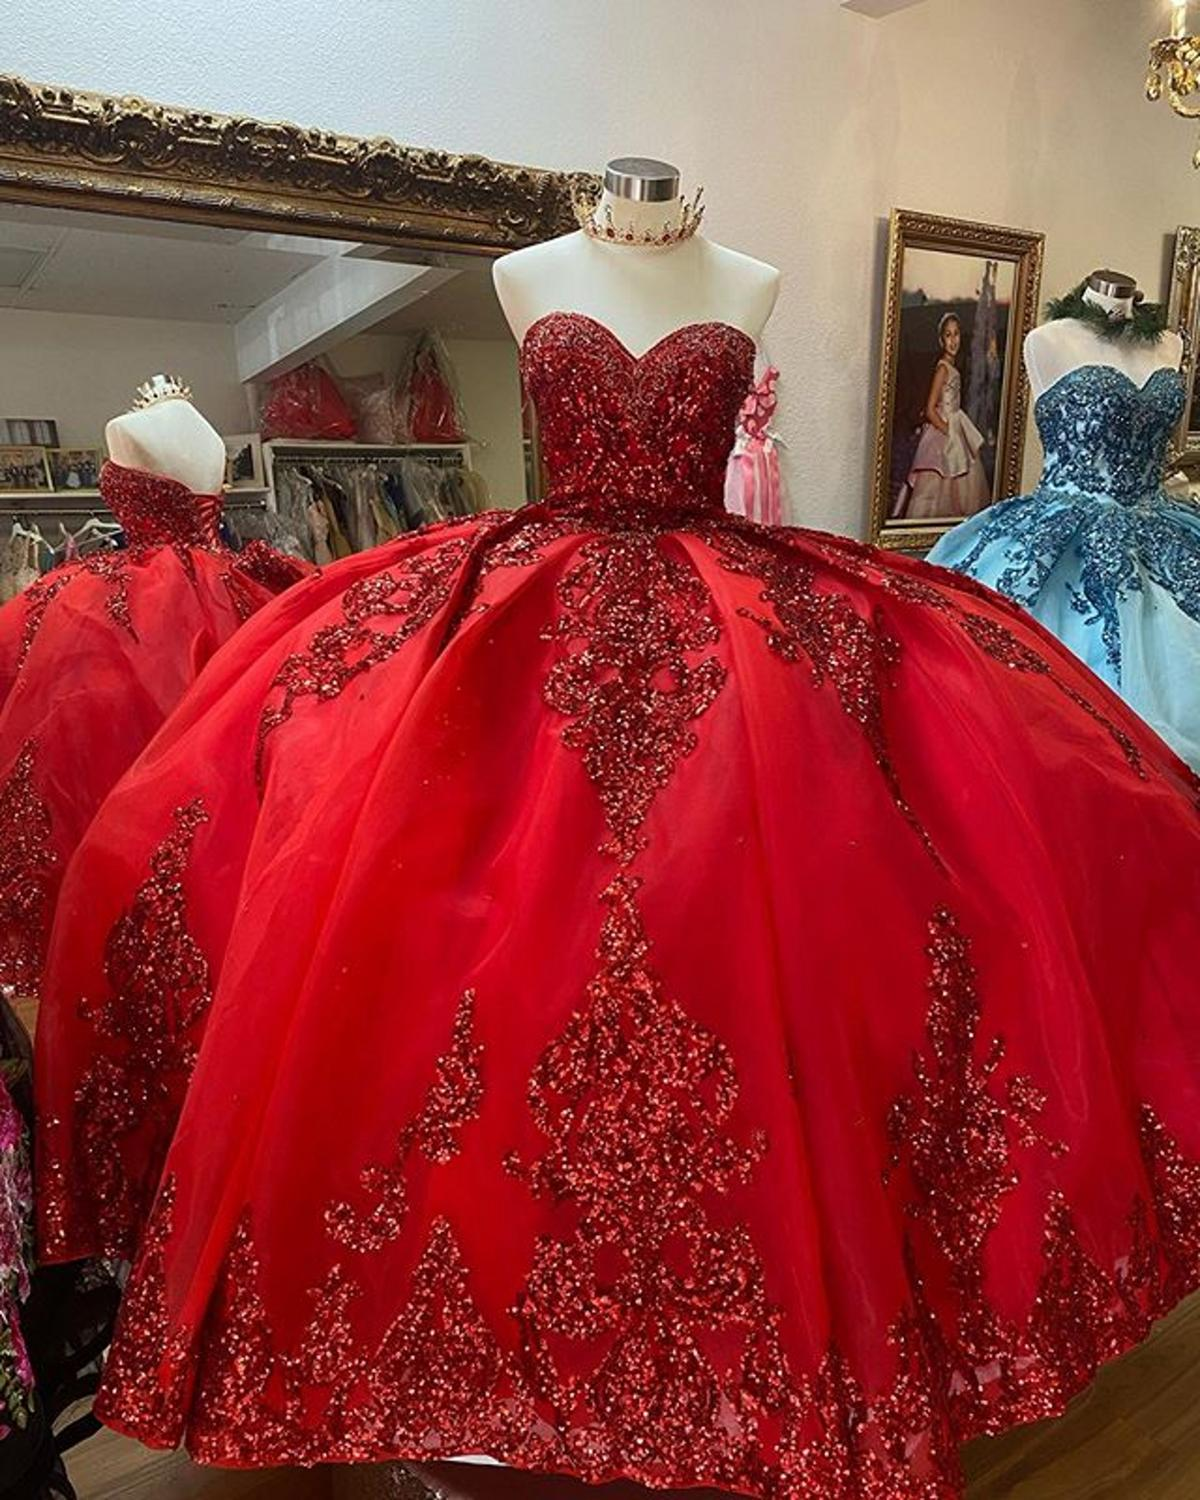 Sparkly Red Ball Gown Quinceanera <font><b>Dresses</b></font> with Dechable Sleeves Sweetheart Tulle Vintage Lace Applique <font><b>Sweet</b></font> <font><b>16</b></font> <font><b>Dress</b></font> Party Wear image